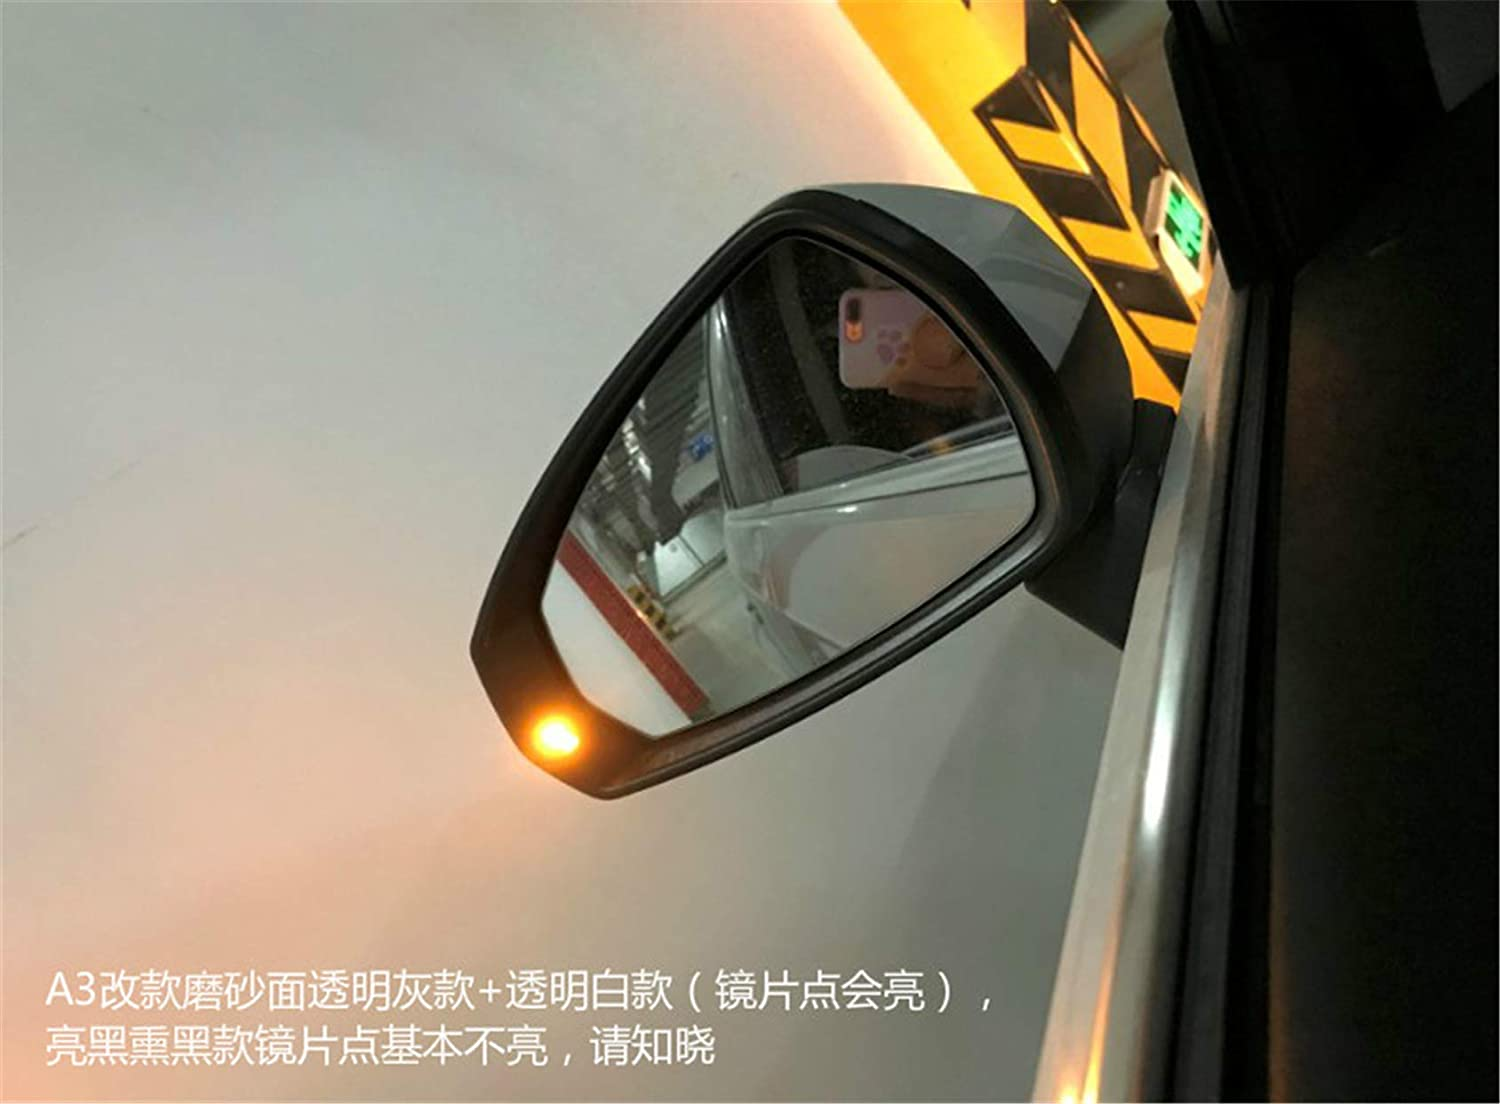 HDX Rear View Mirror Dynamic Turn Signal LED Light Indicator for Audi A3 S3 RS3 8V 3th 2013-2019 LBF730 Crystal